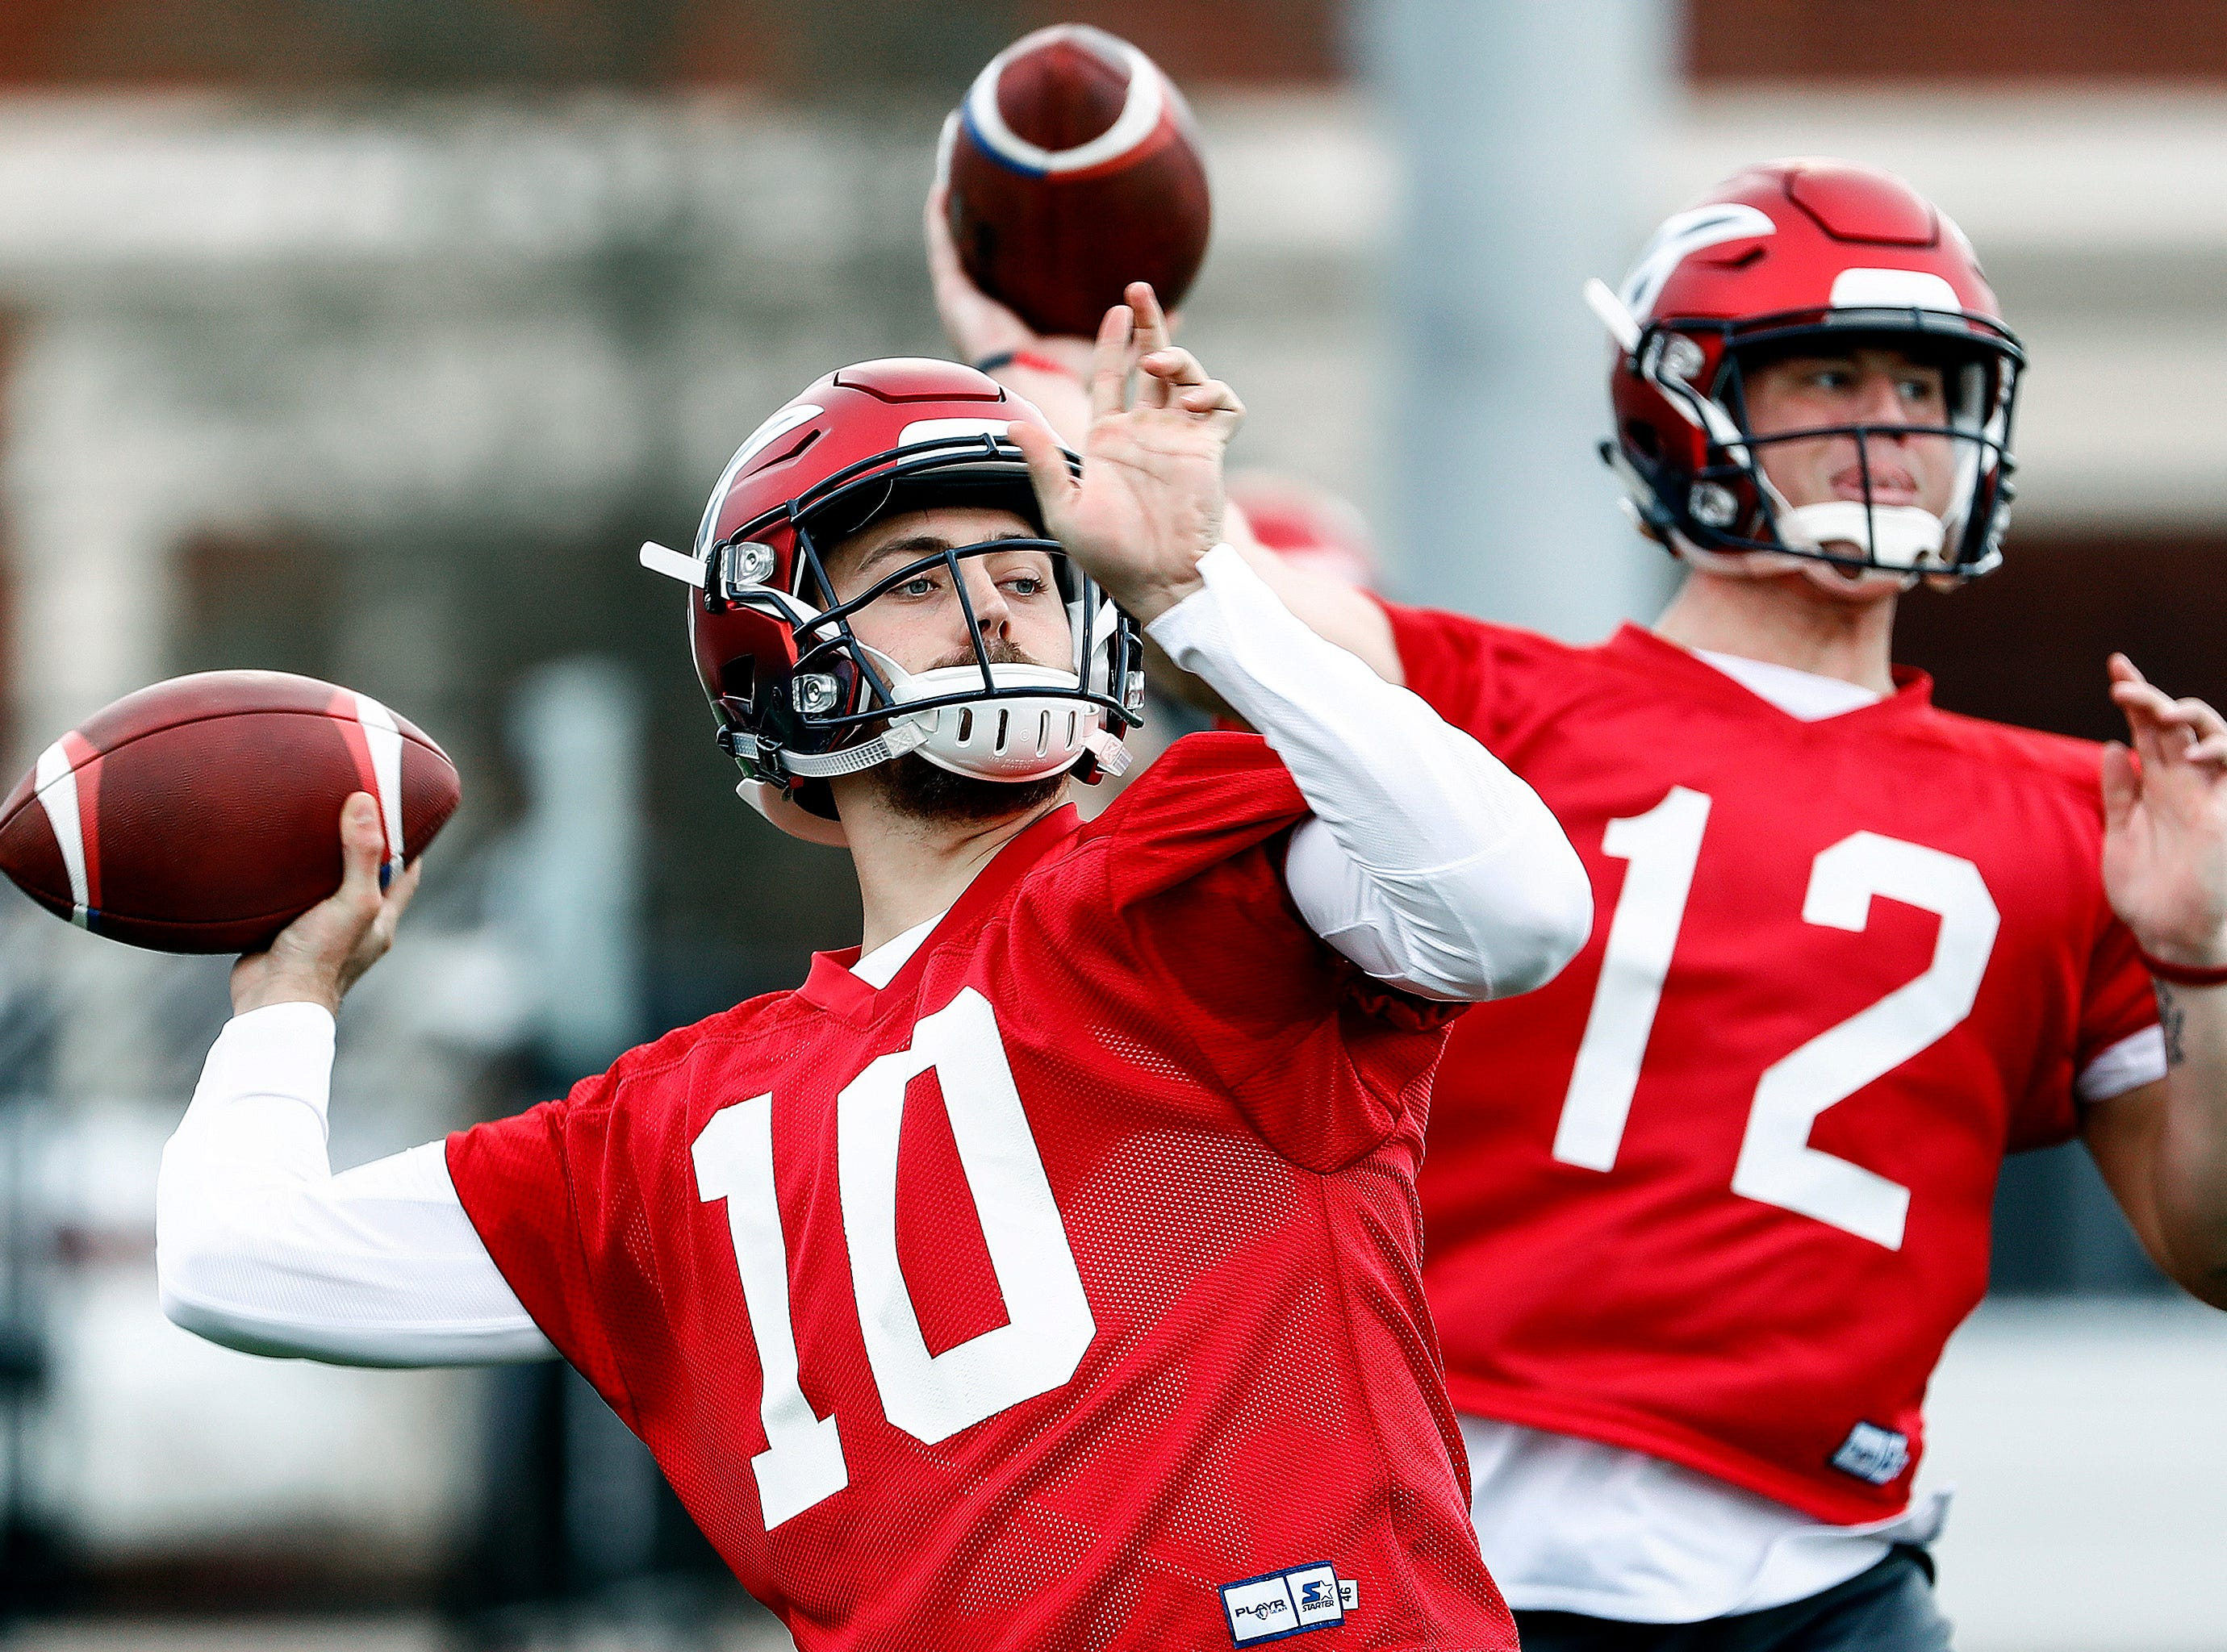 Memphis Express quarterbacks Troy Cook (left) and Brandon Silvers (right)  during training camp in San Antonio, Texas.